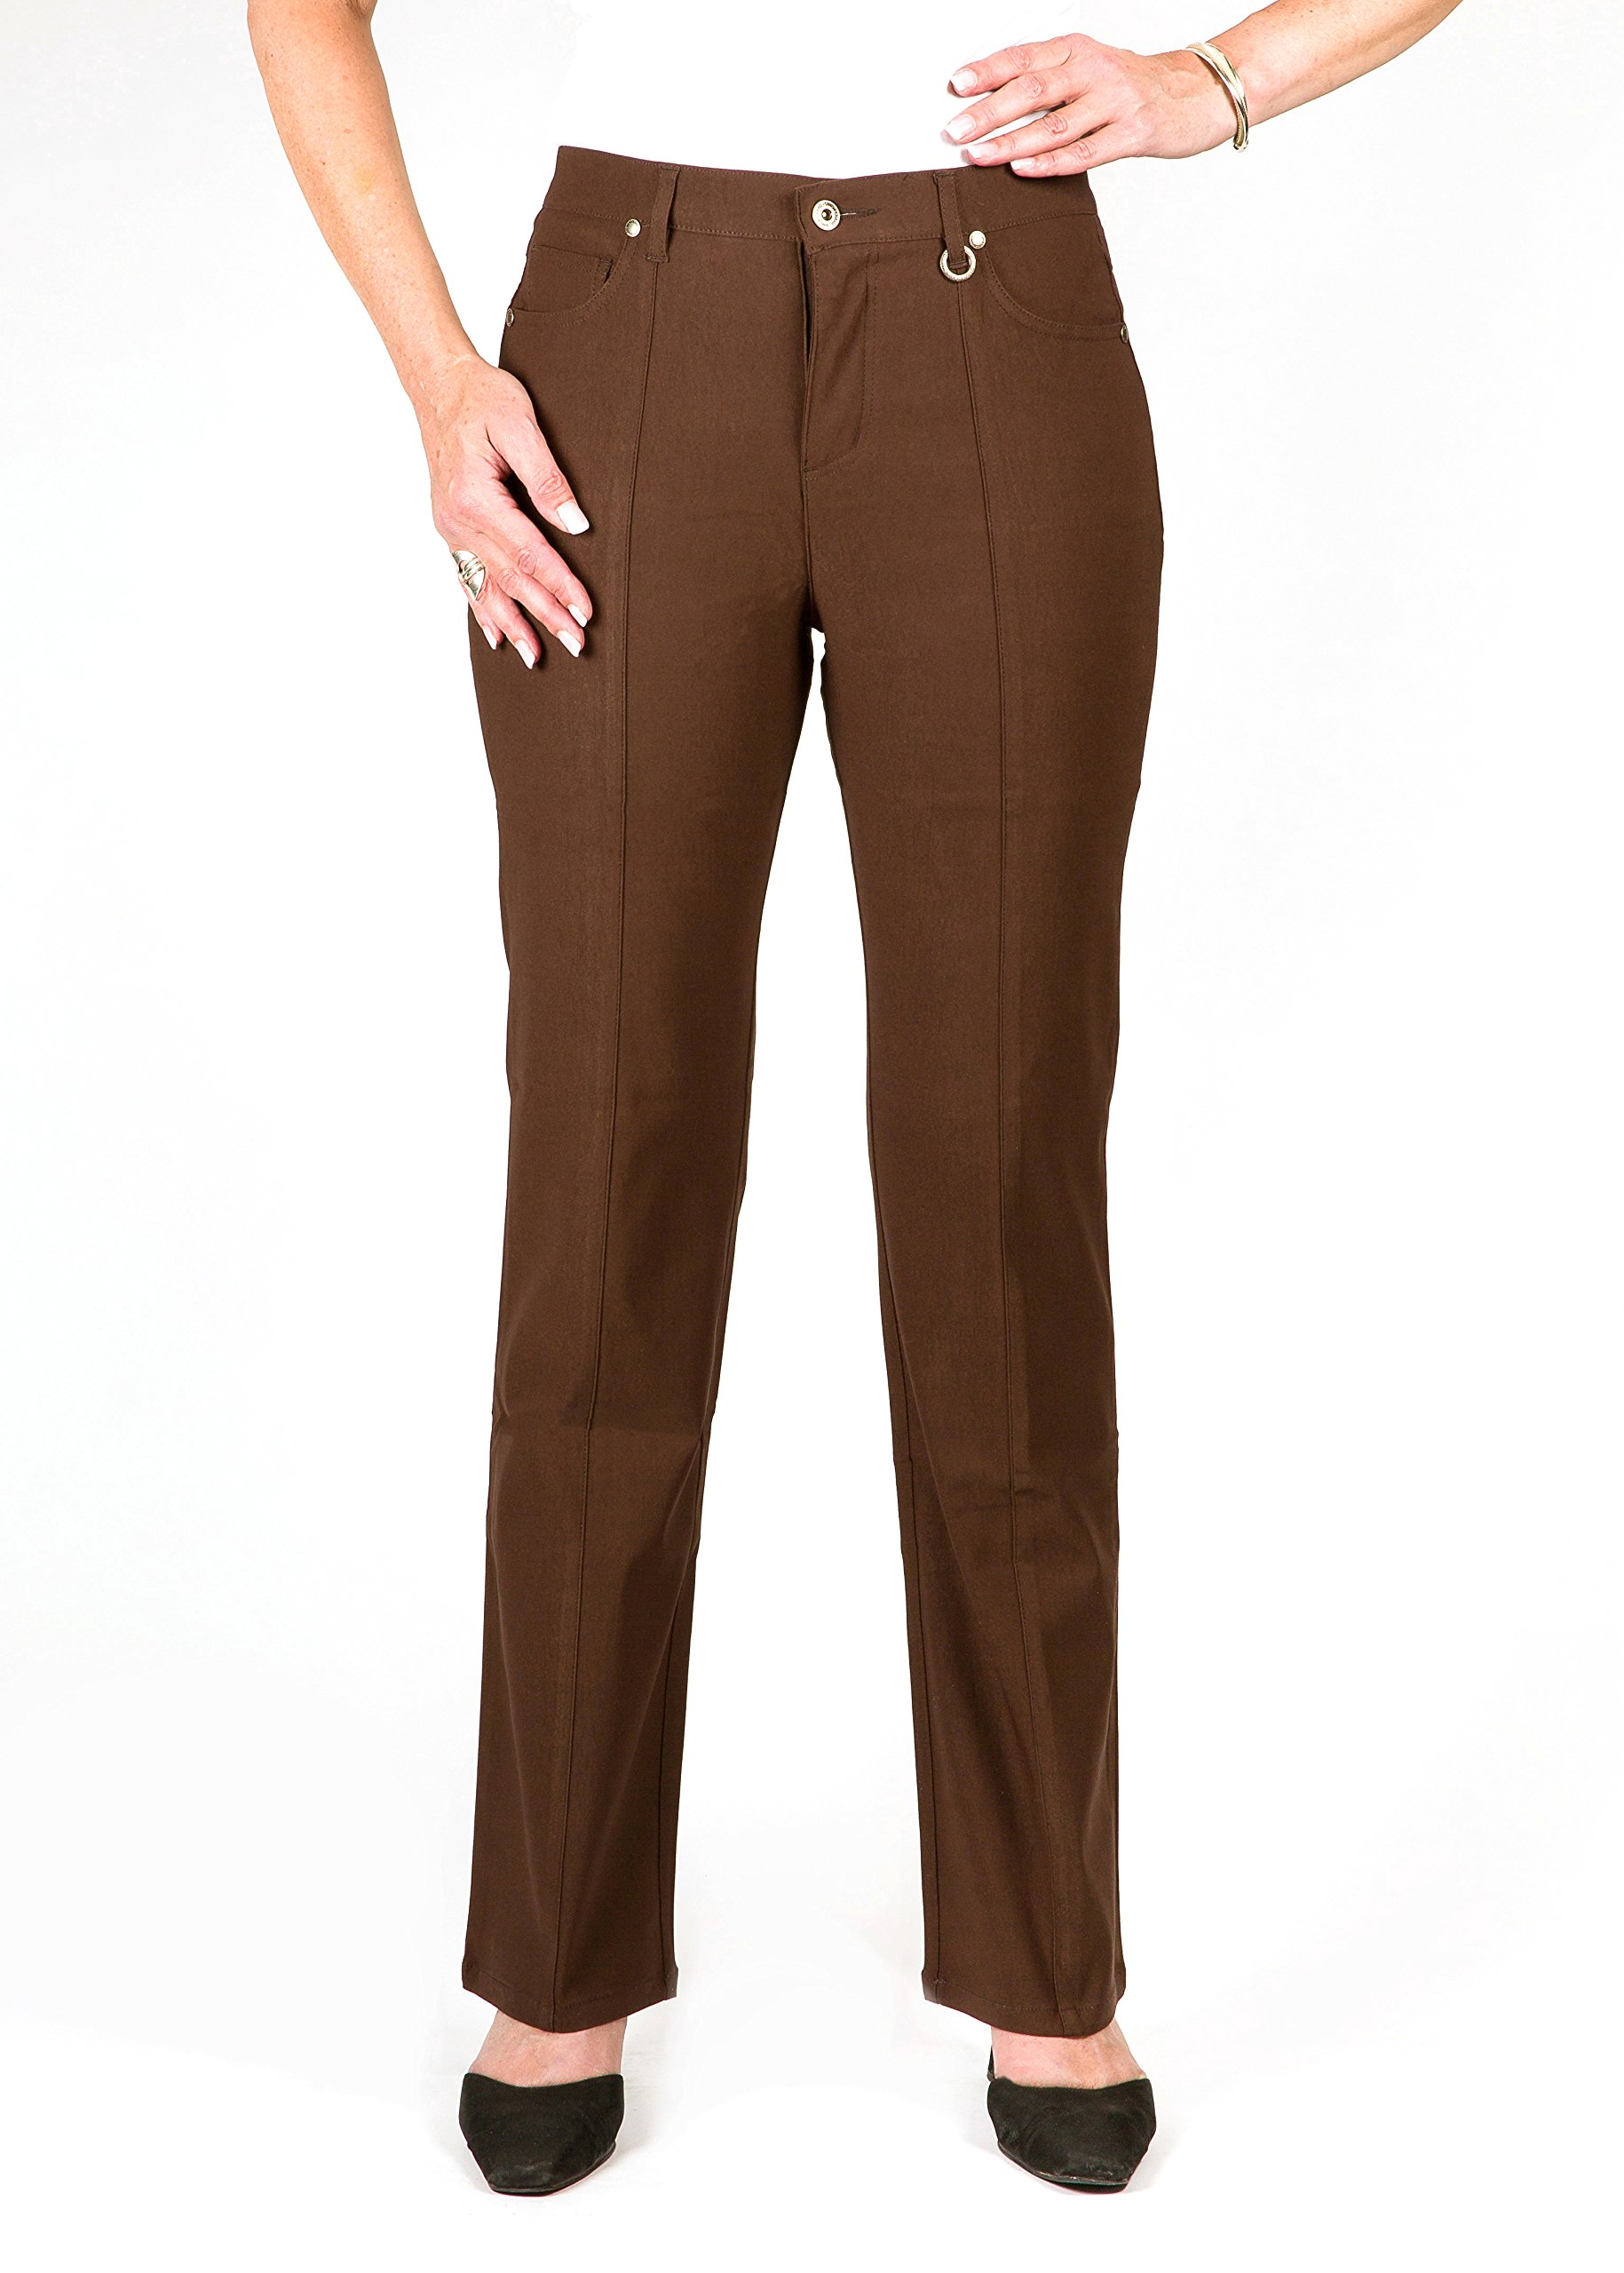 *Petite* Simon Chang 5 Pocket Straight Leg Microtwill Pant Style#3-5302P (4 PT, Brown) by Simon Chang